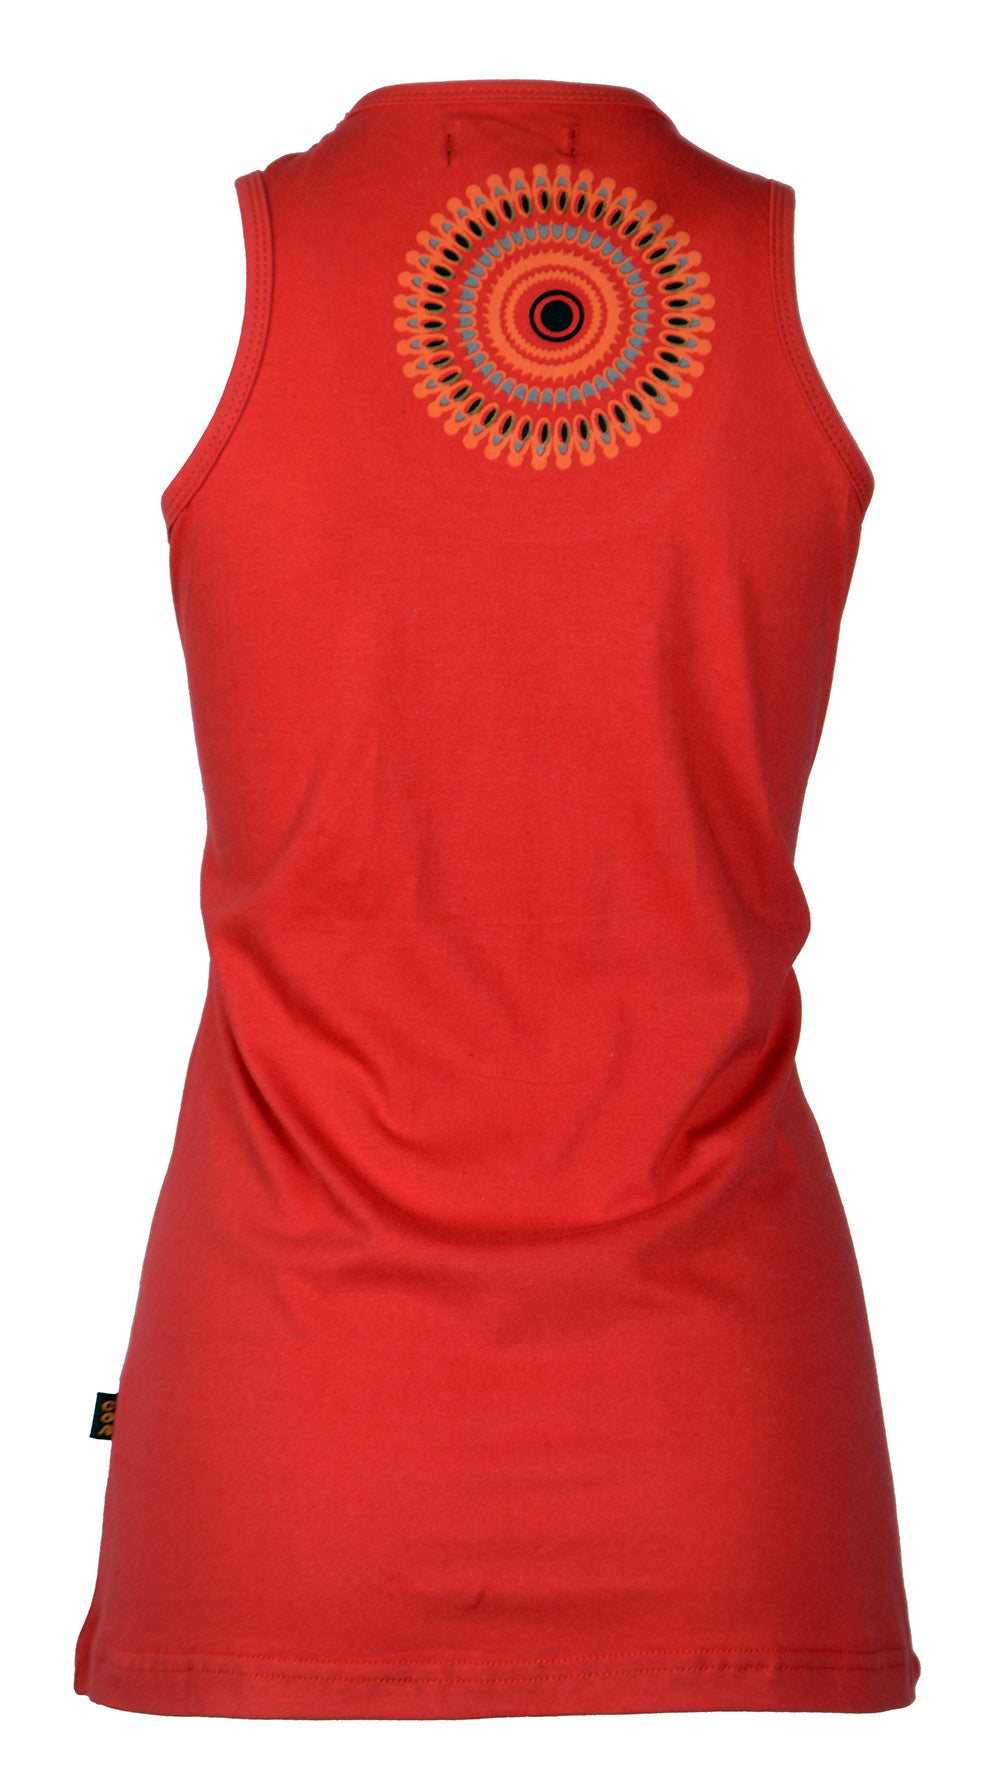 Ladies Summer Sleeveless Tops T-Shirt with Colorful Ring Pattern Print-Sunflower - Craze Trade Limited